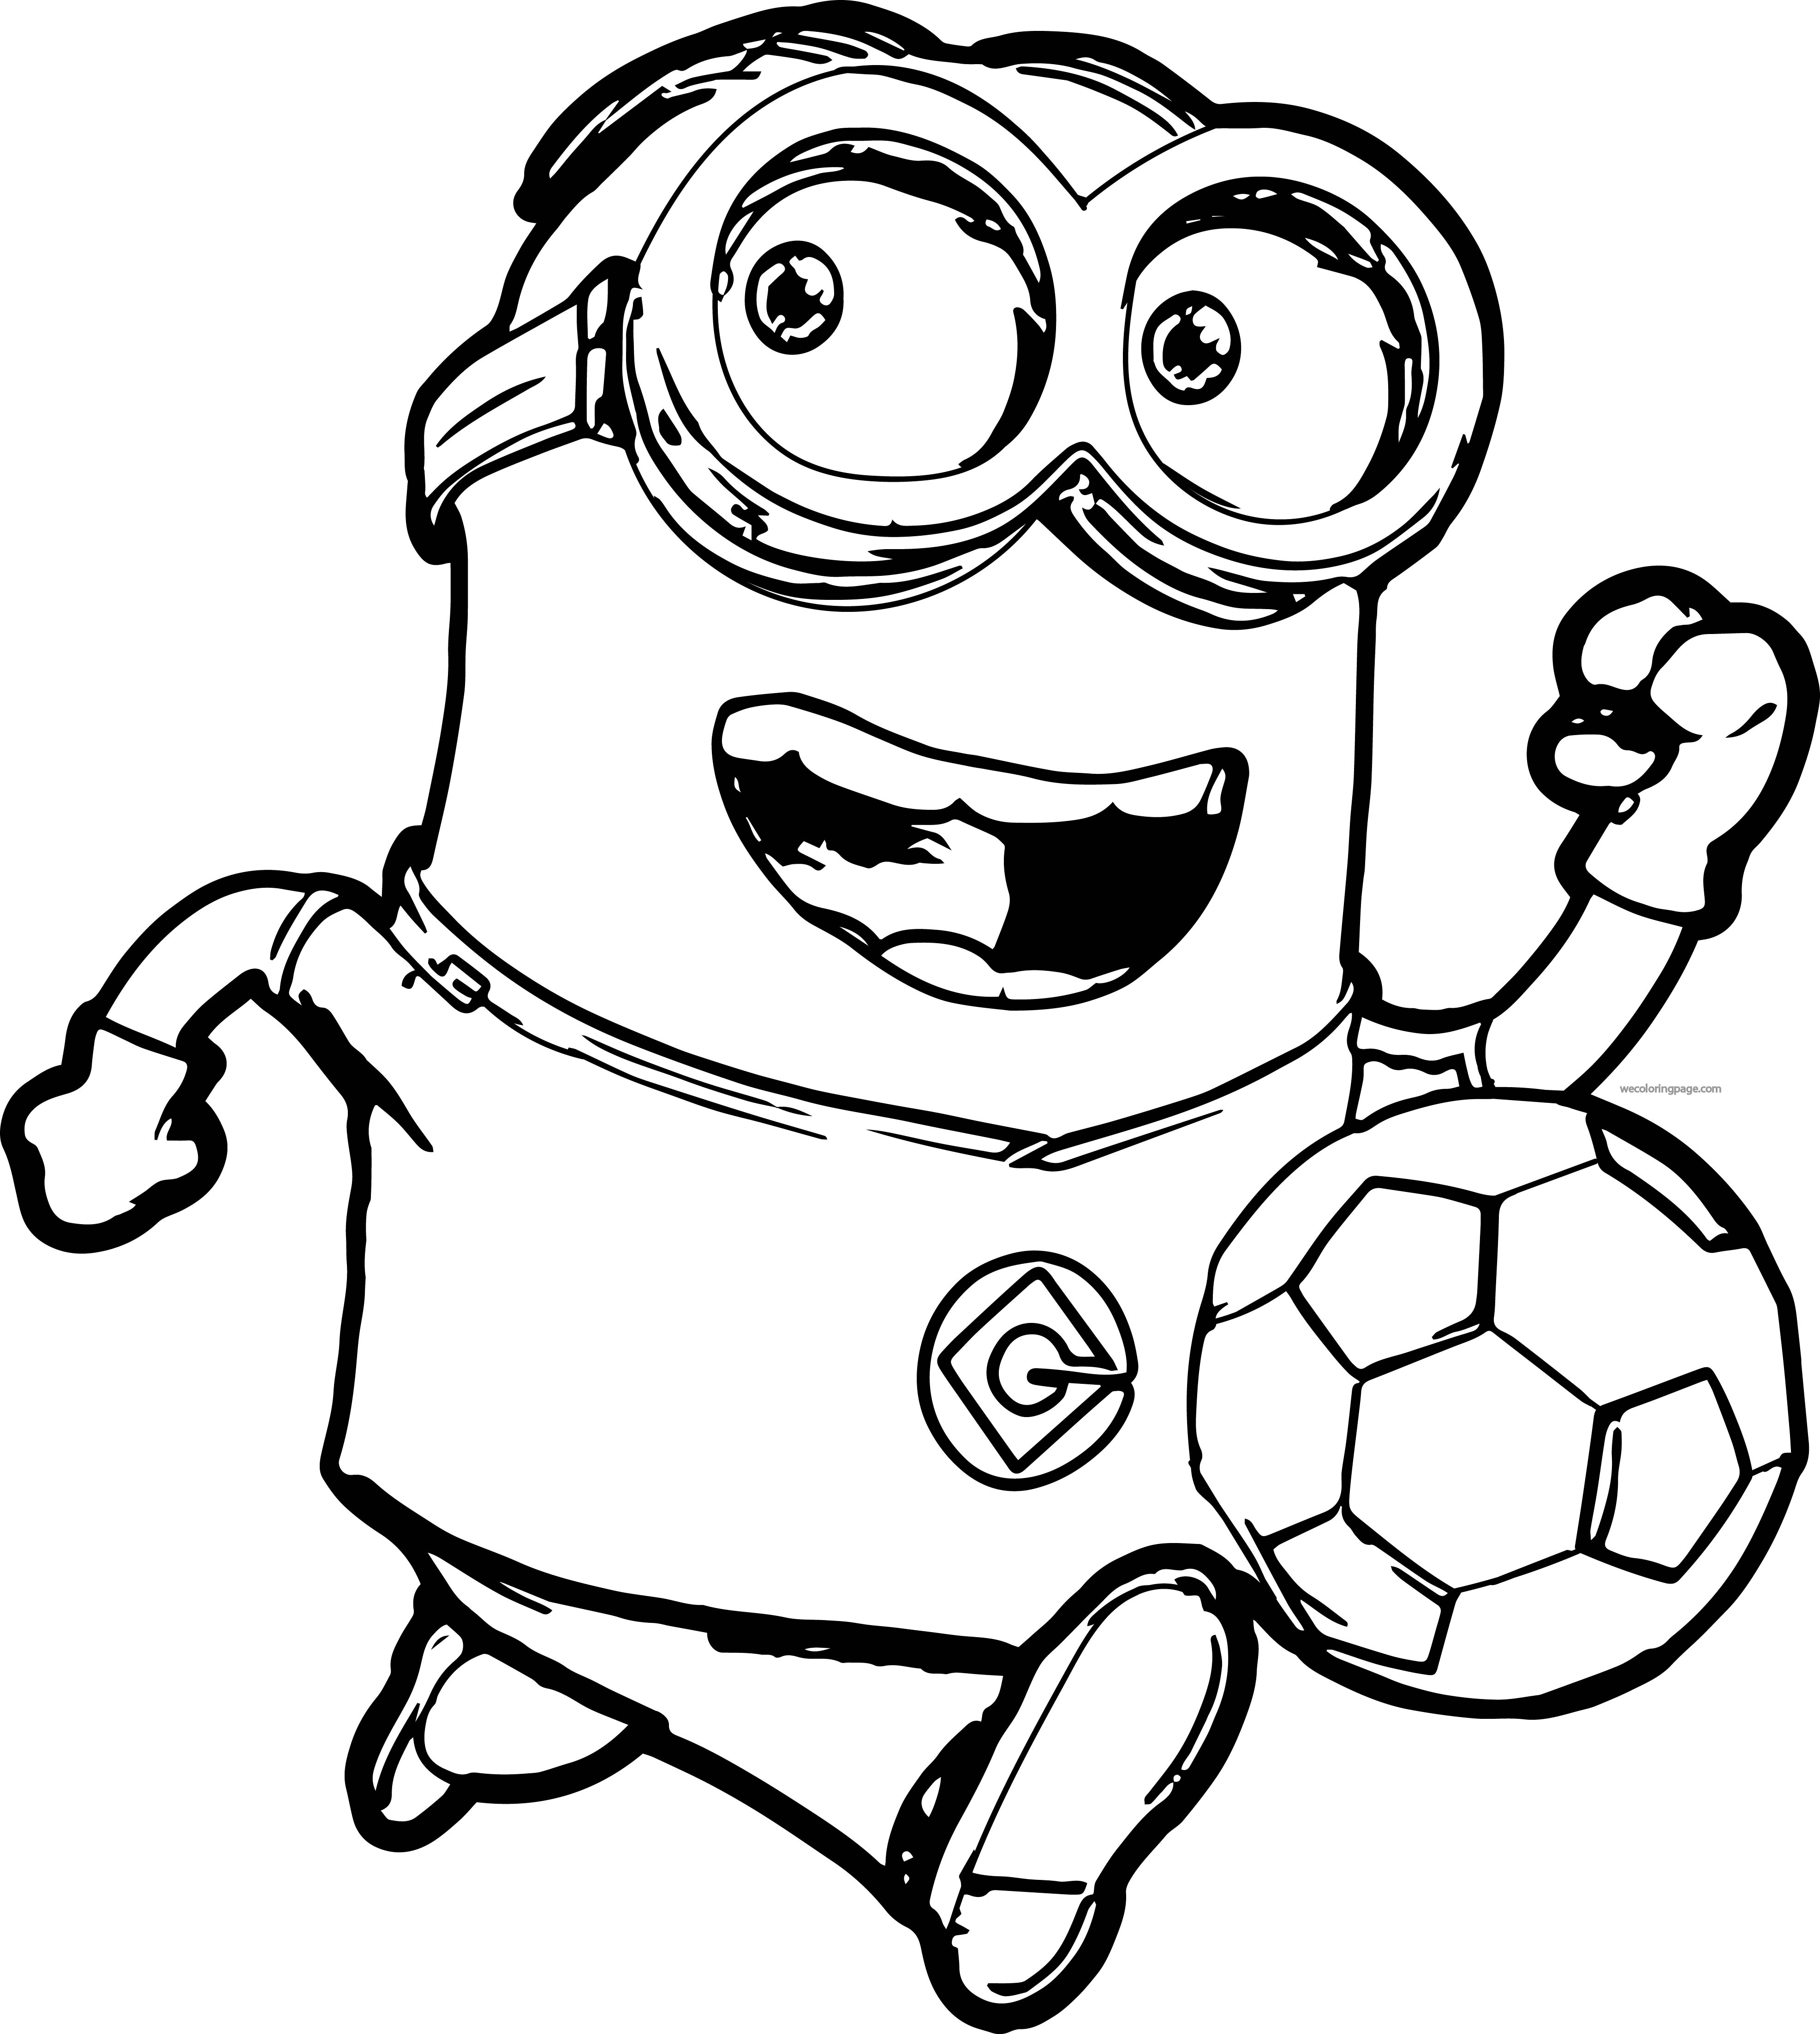 3945x4408 Minion Coloring Pages Best For Kids Incredible Printable Colouring